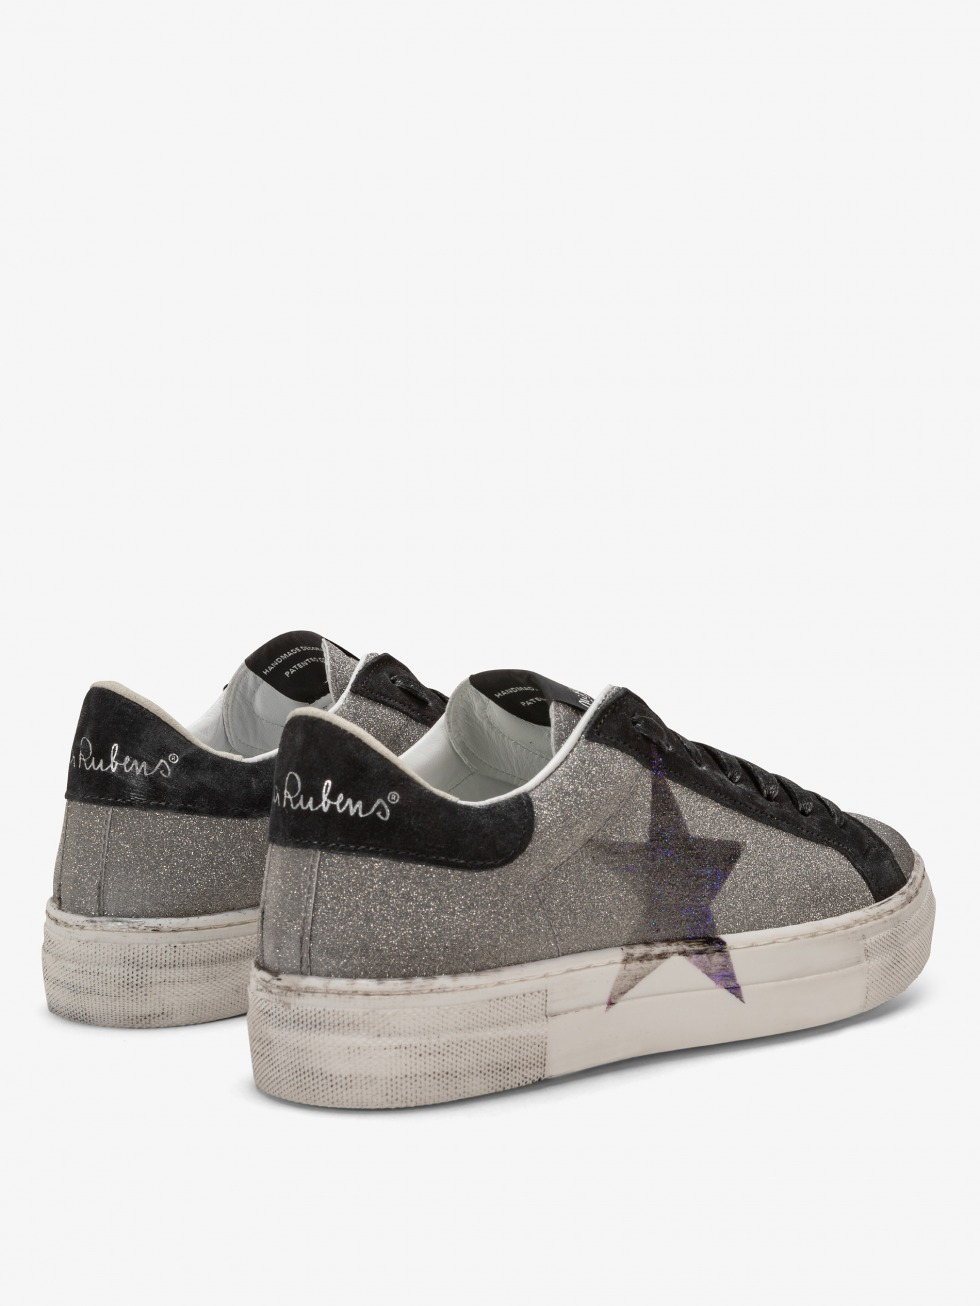 Martini Sidera Sneakers - Violet Star